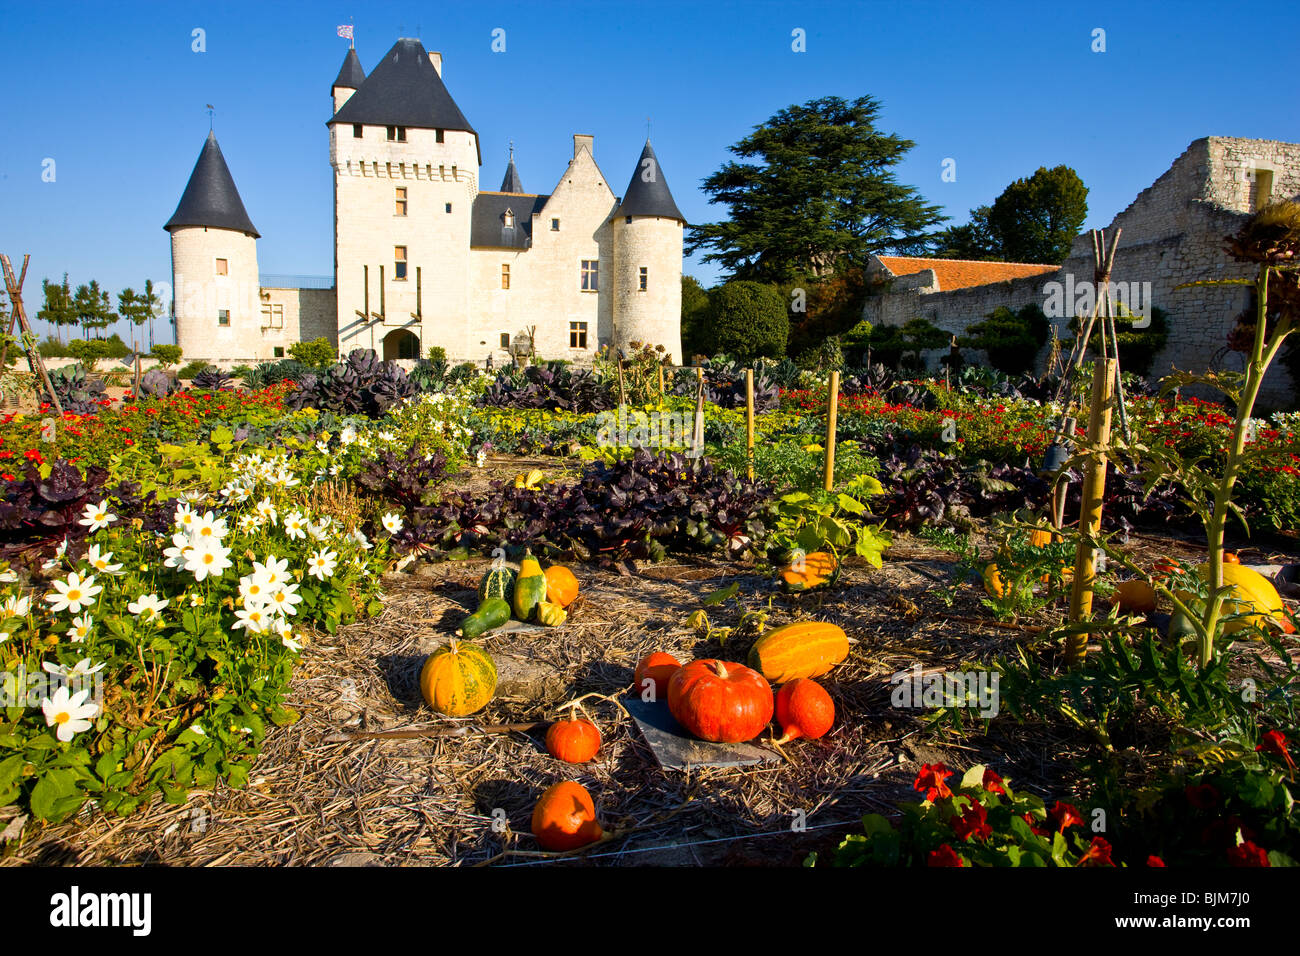 Rivau Castle and gardens, Loire Valley, France, UNESCO Heritage Site, 15th Century - Stock Image